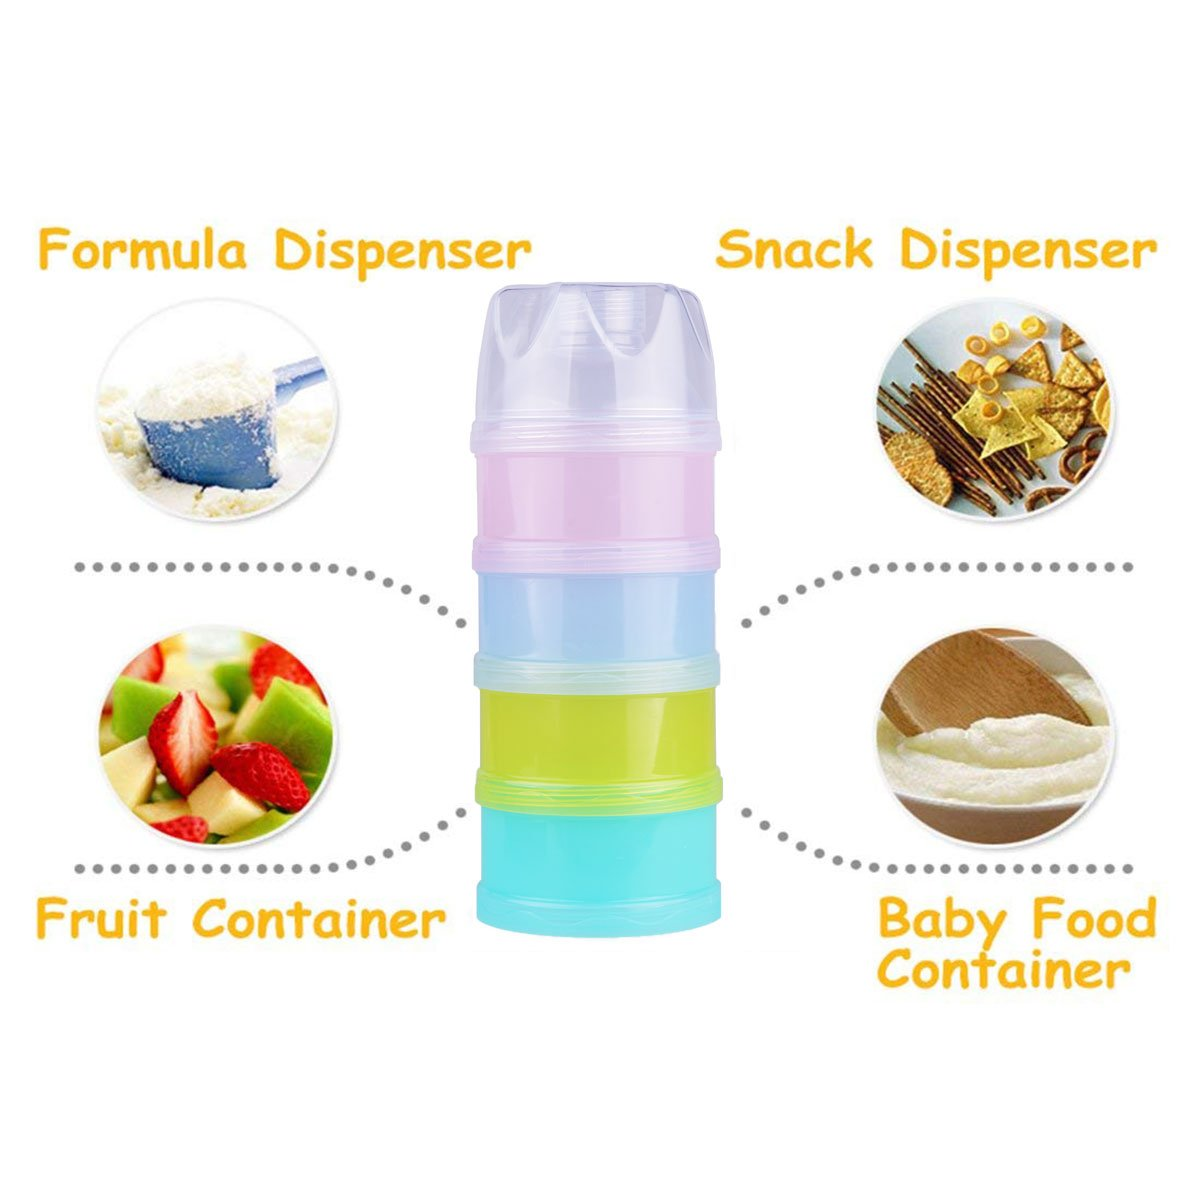 4 Layers BPA Free Stackable Formula Milk Powder Dispenser for Travel Night Time Feedings and Snack Storage Pills Containers